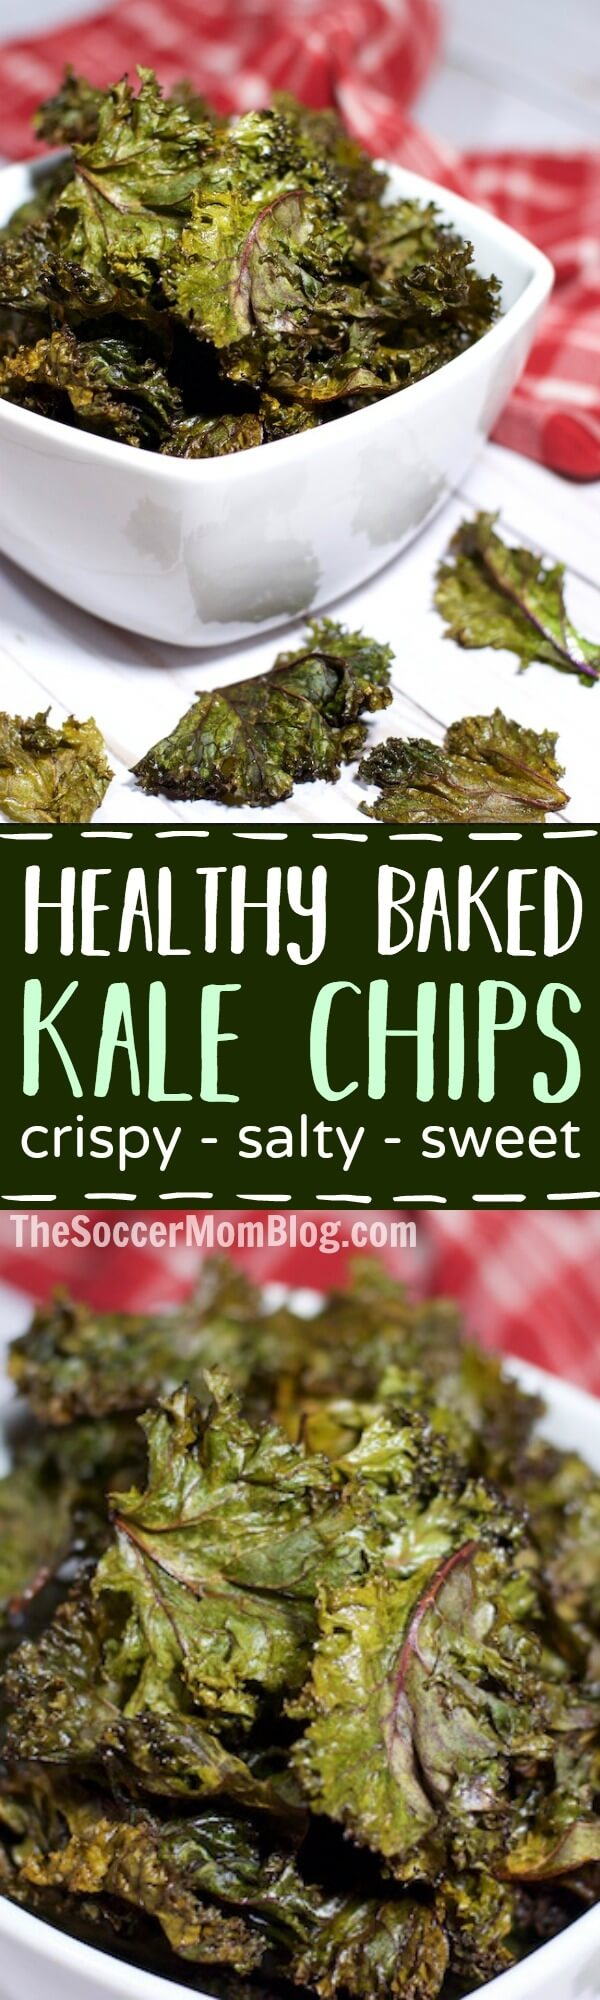 Crispy, salty, & a touch of sweet — these Baked Purple Kale Chips are so tasty you might just eat the whole batch! (But don't worry, they're good for you!)